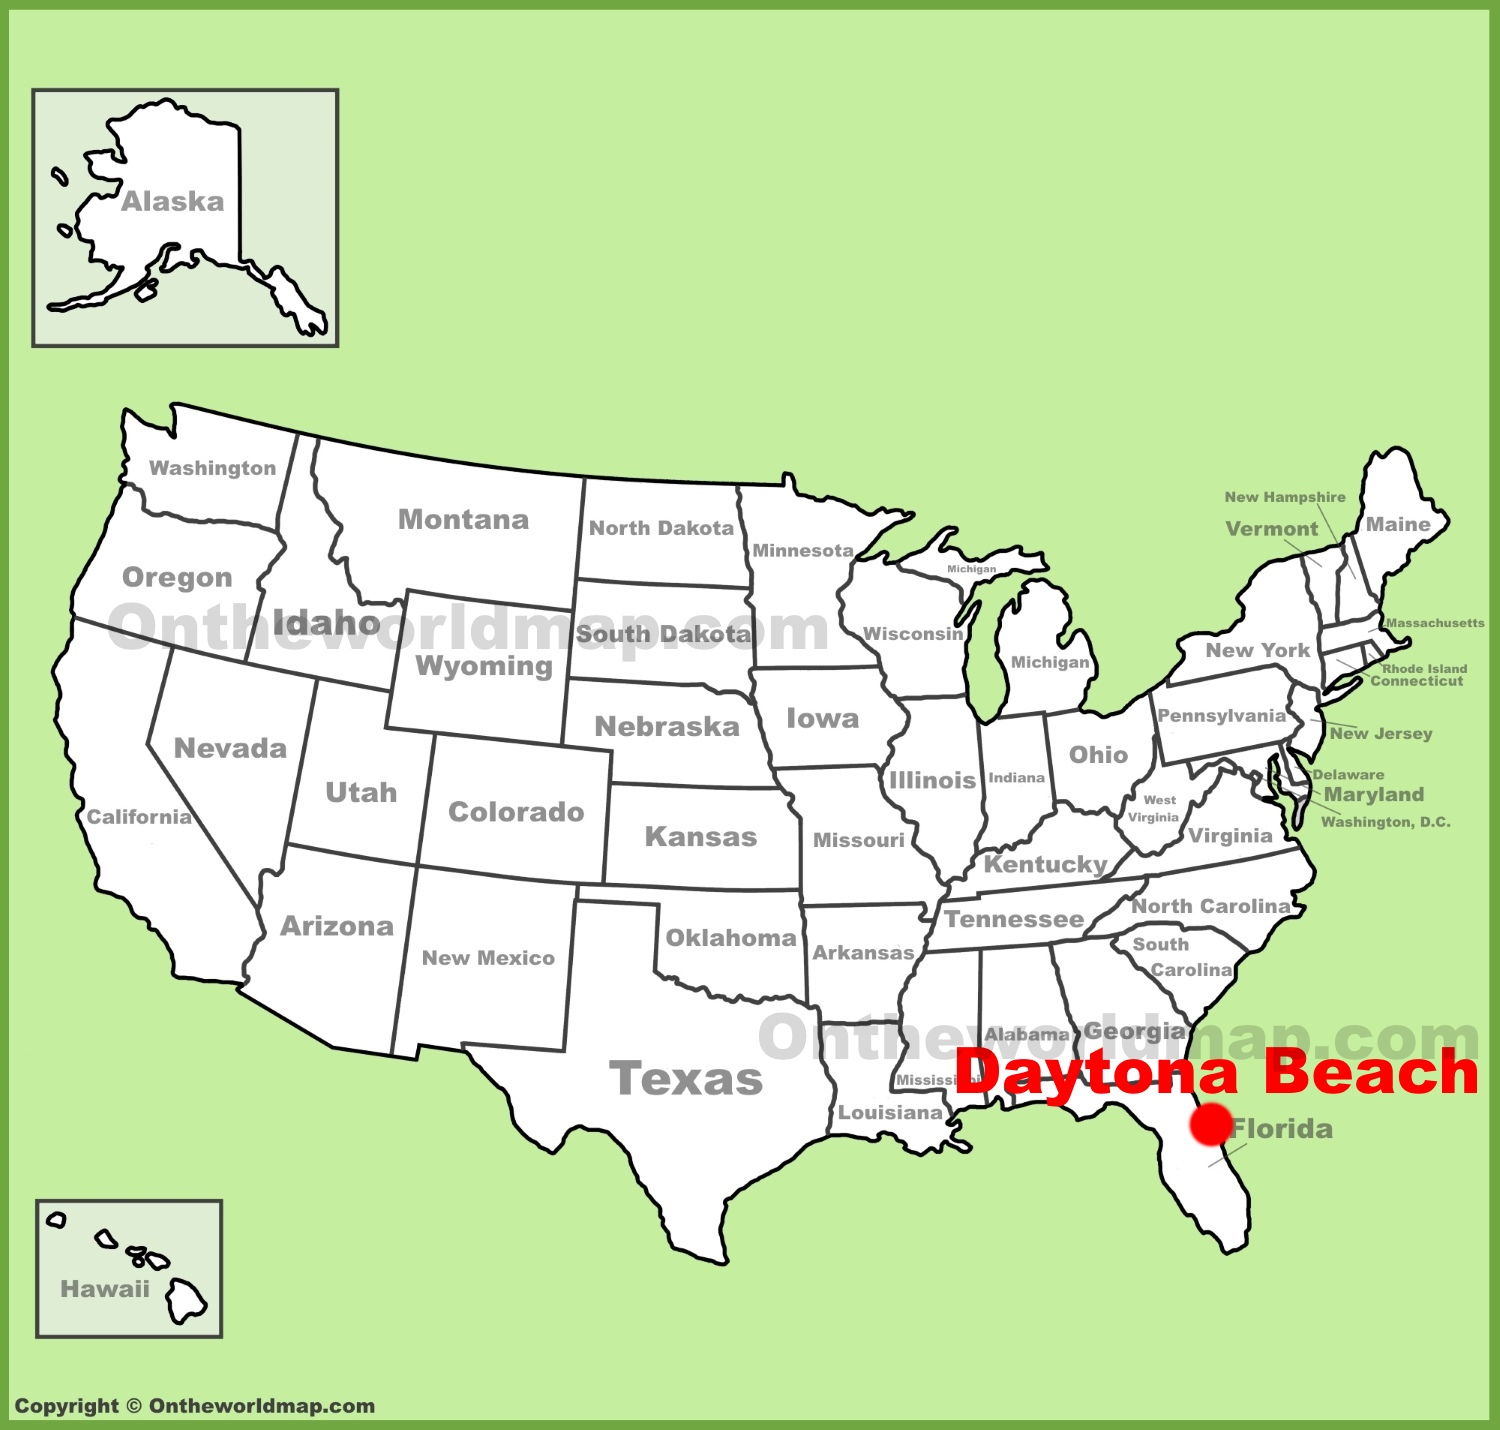 Daytona Beach location on the US Map